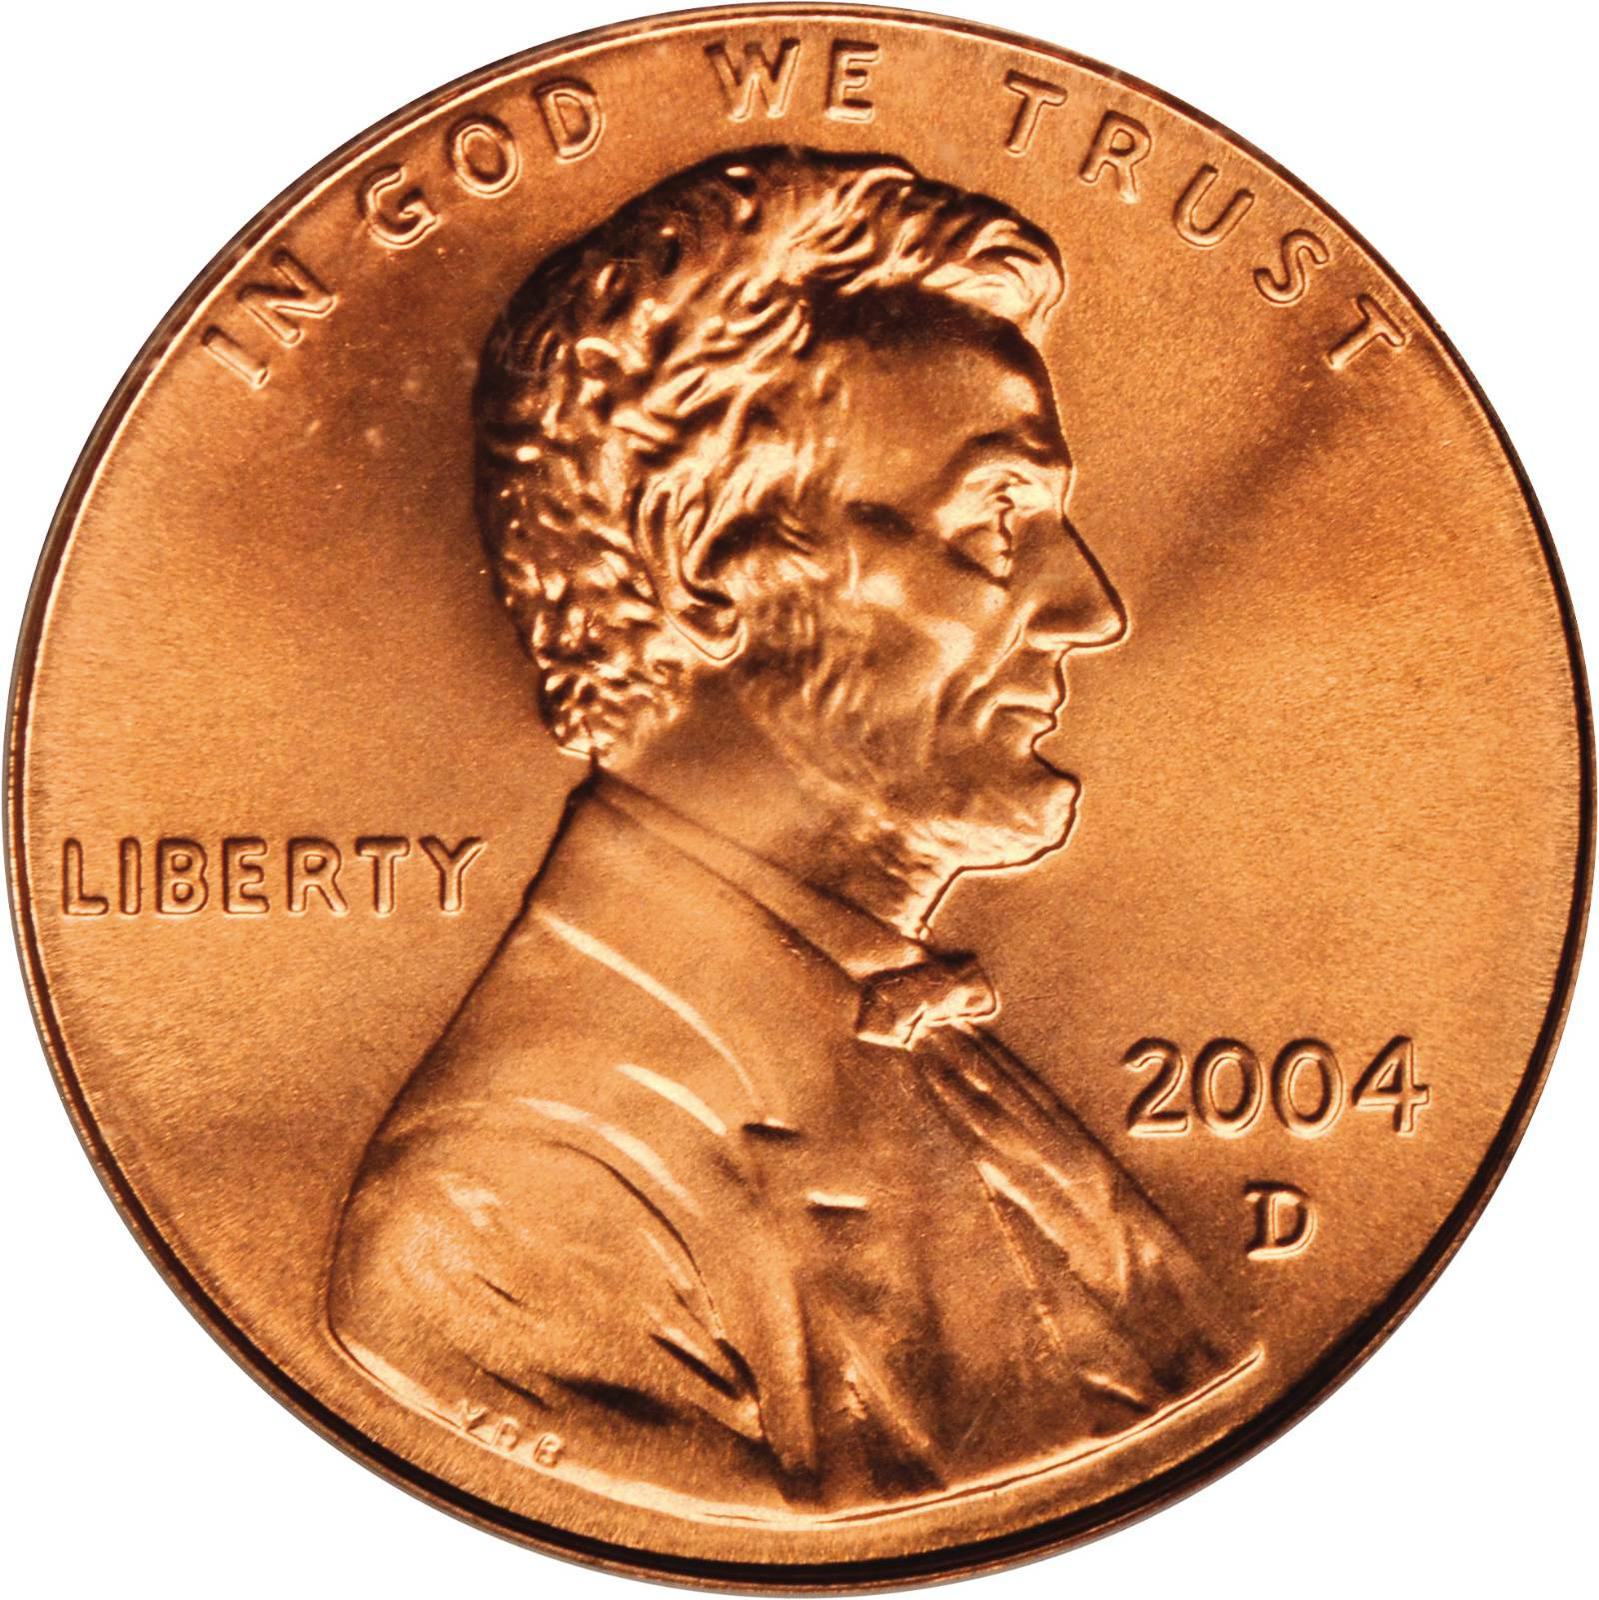 4 cent coin